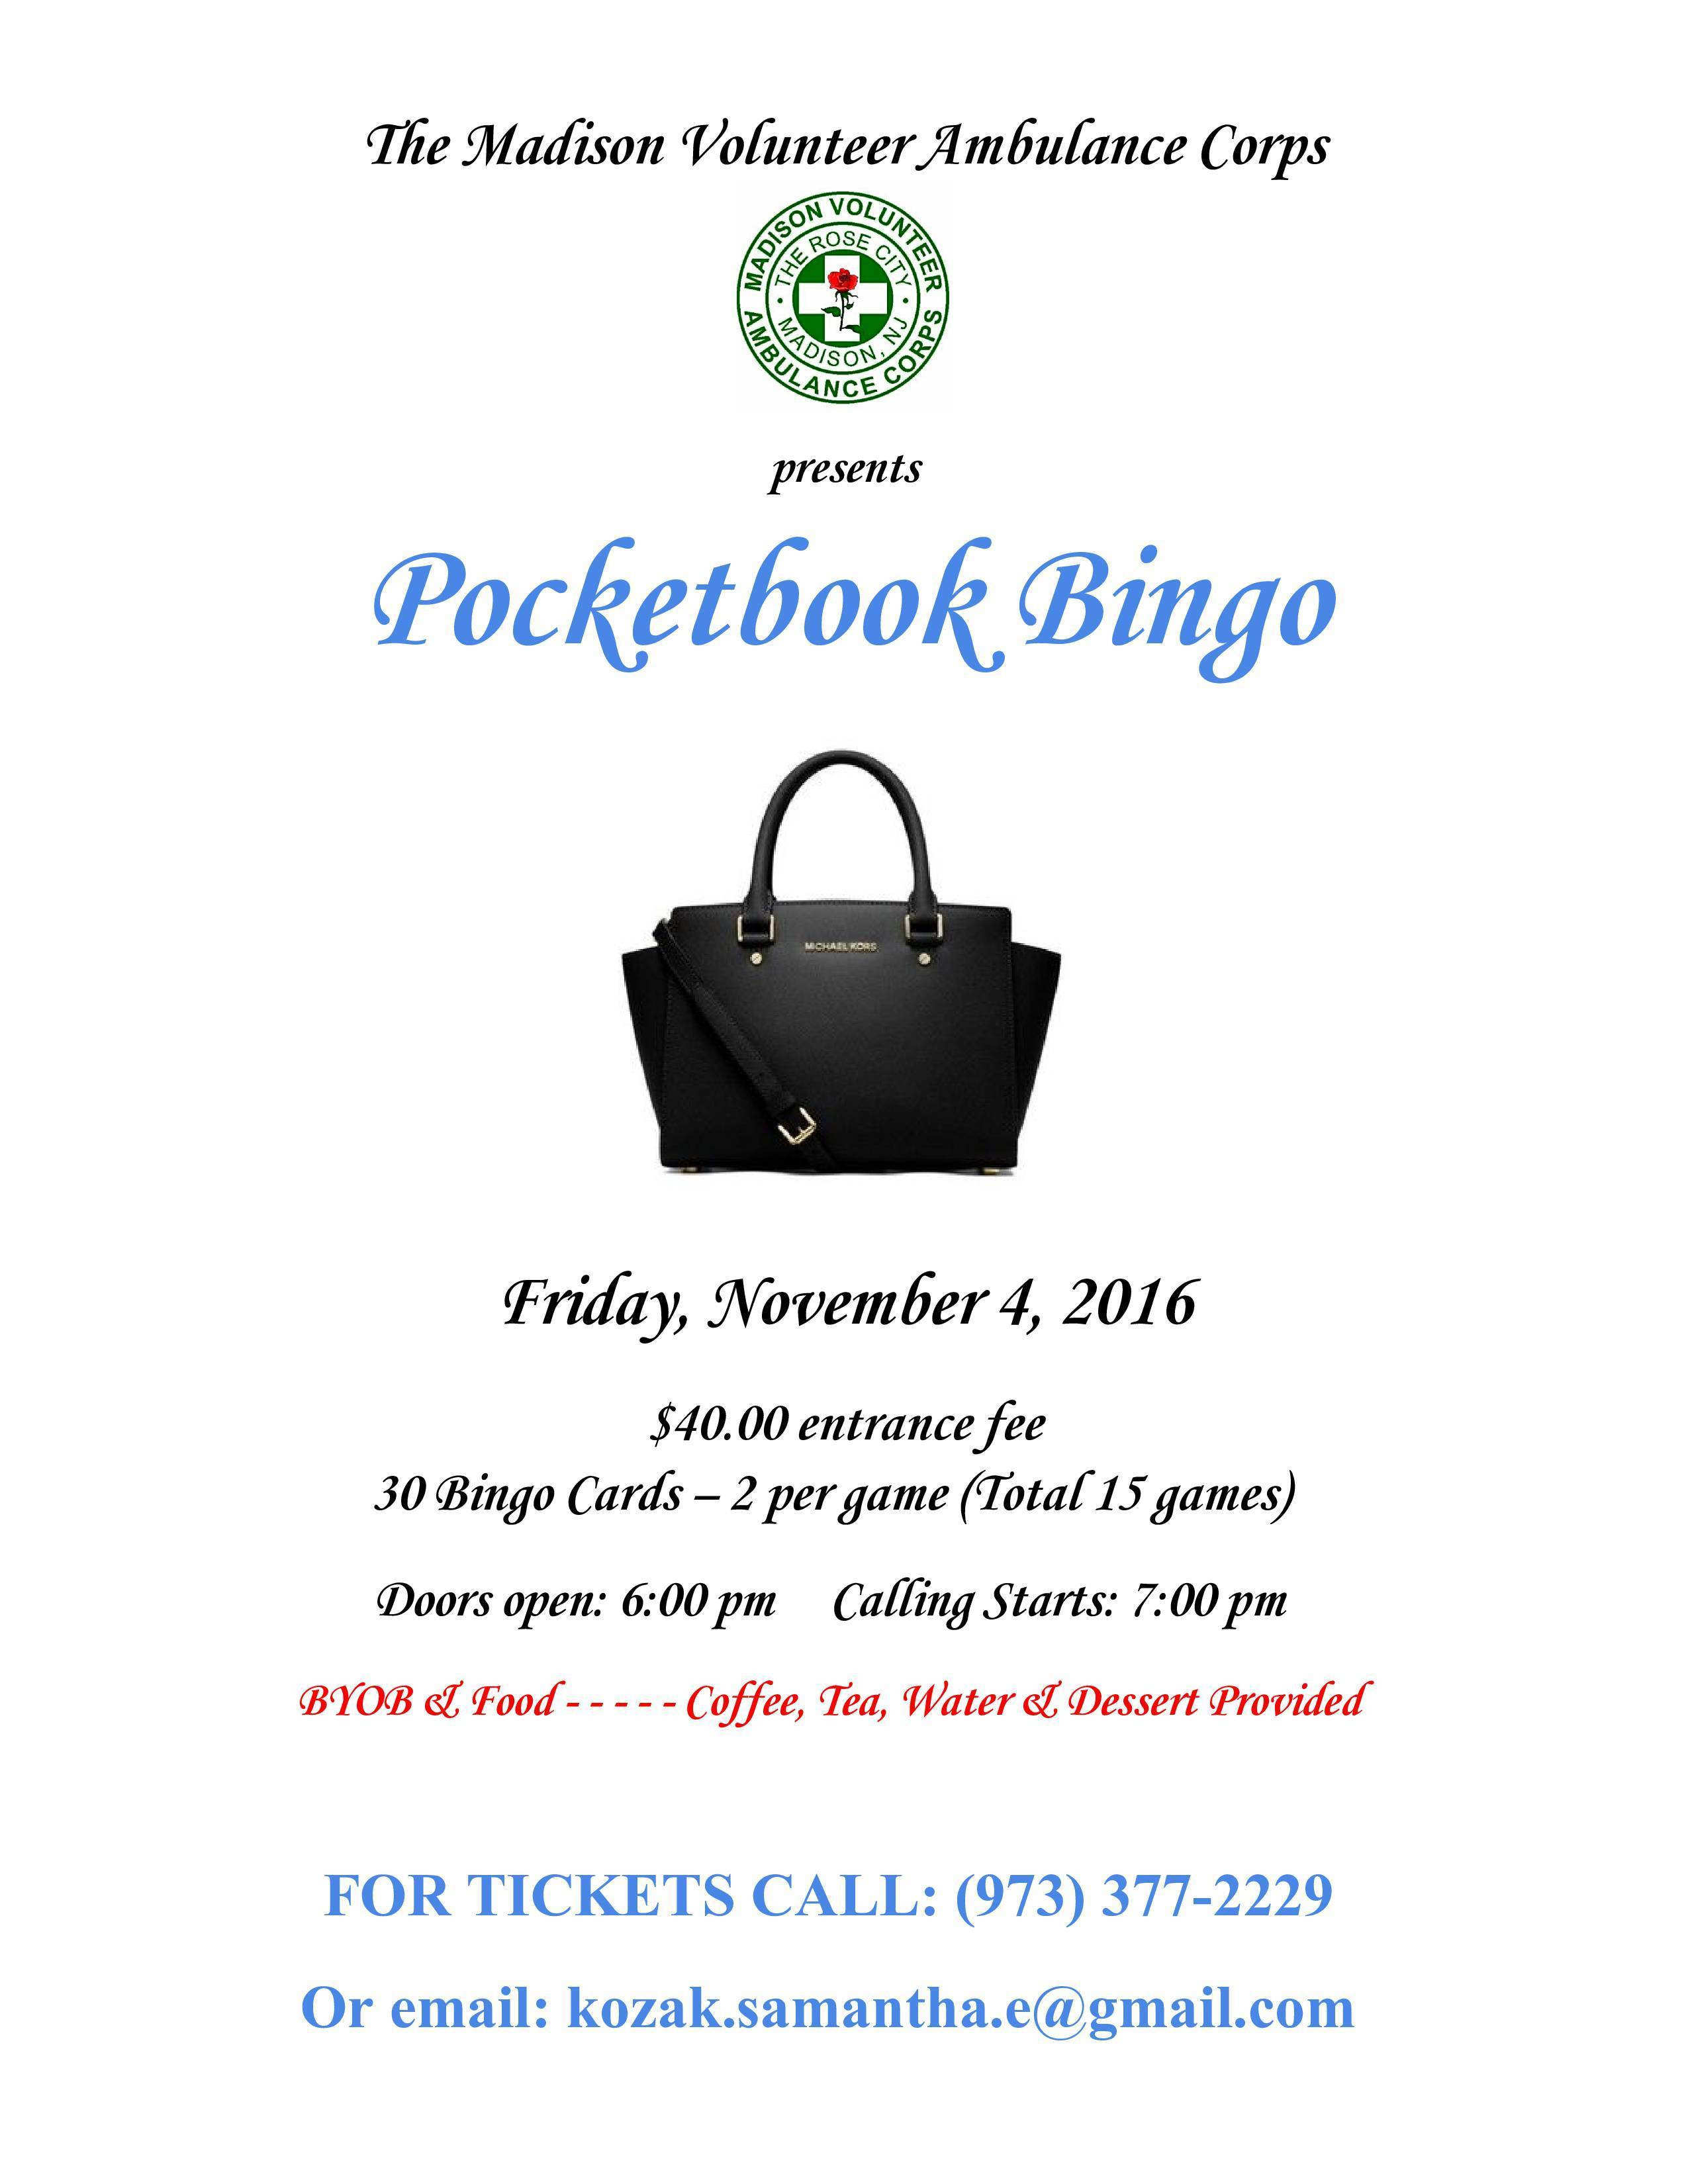 5e3a8e3df85d328e7877_Copy_of_Pocketbook_Bingo_-_Flyer_-November_4_2016__docx.jpg